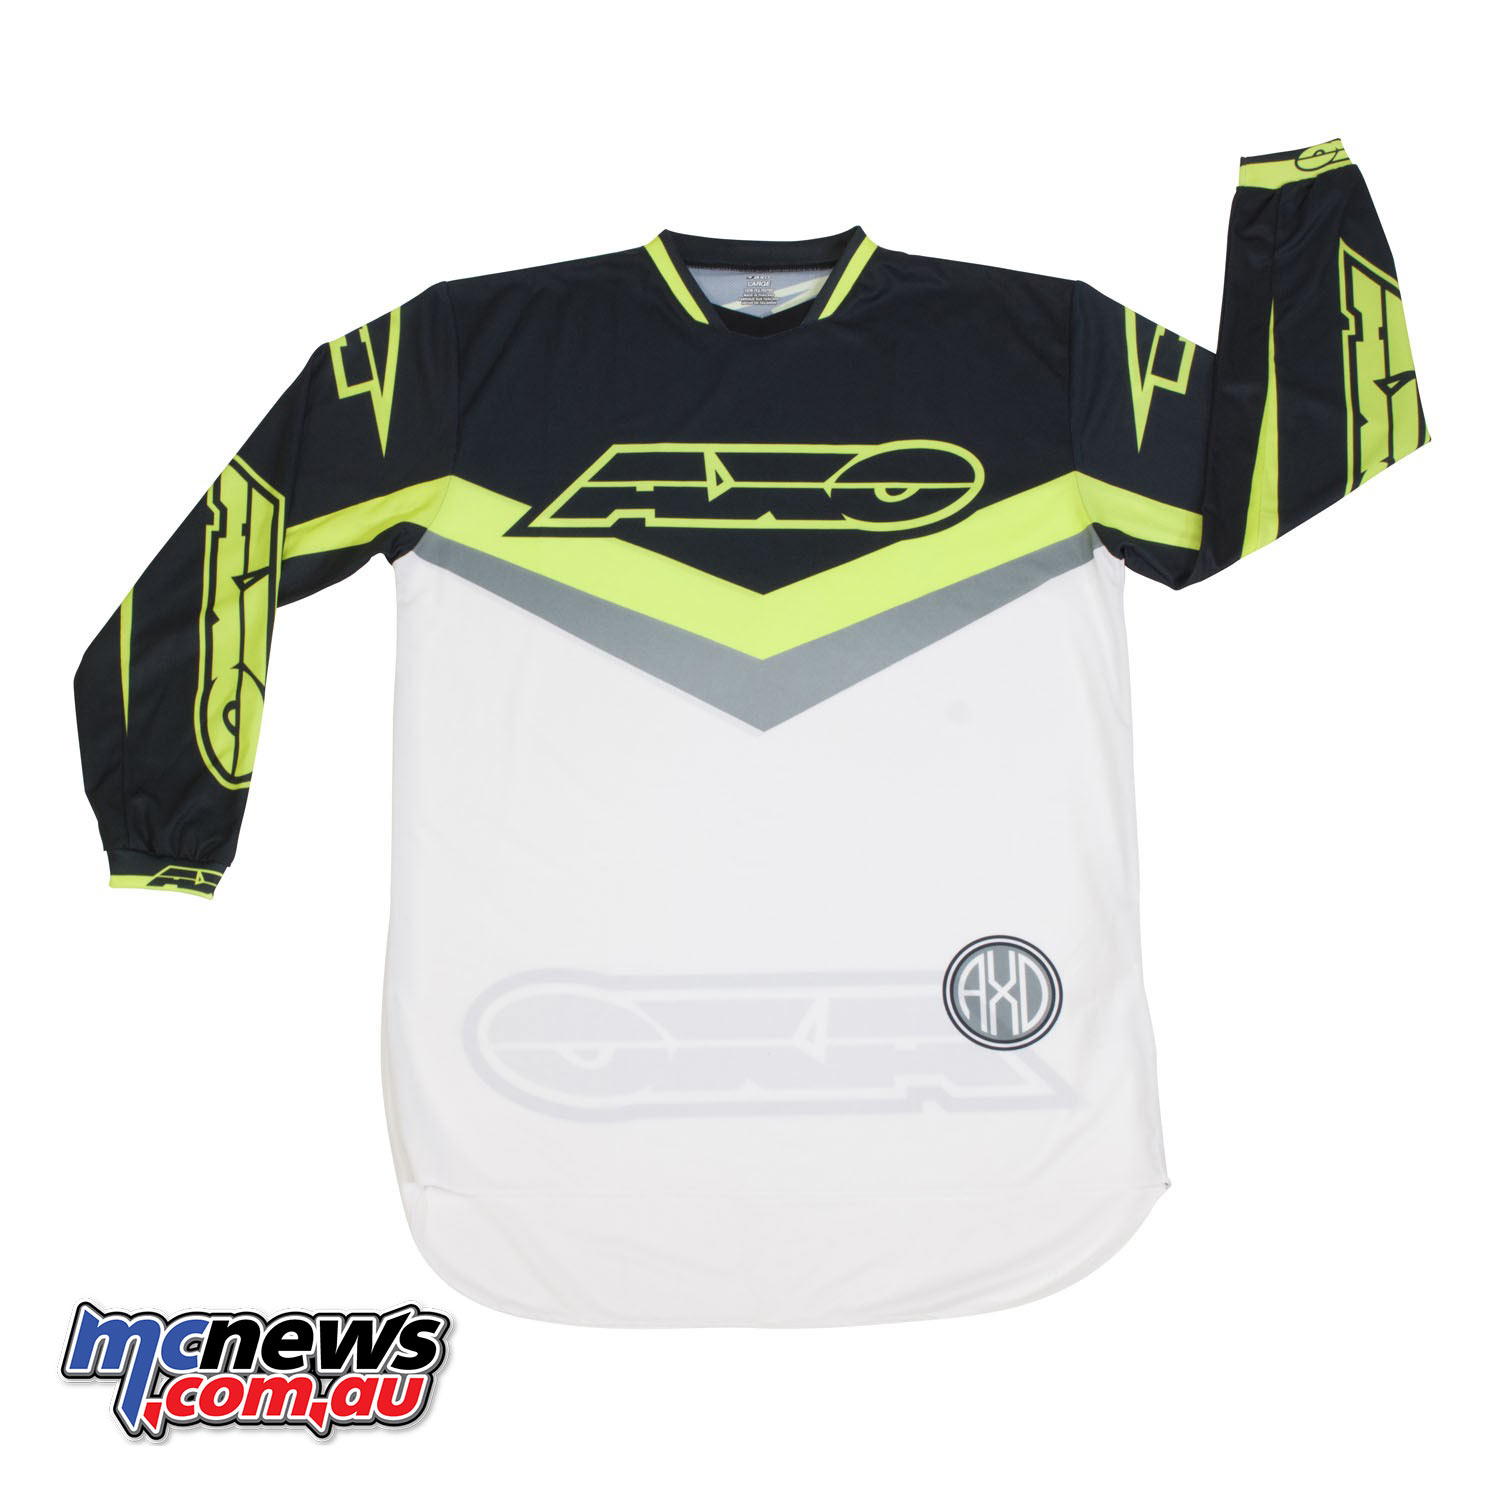 AXO Trans AM Jersey - Black/White/Yellow